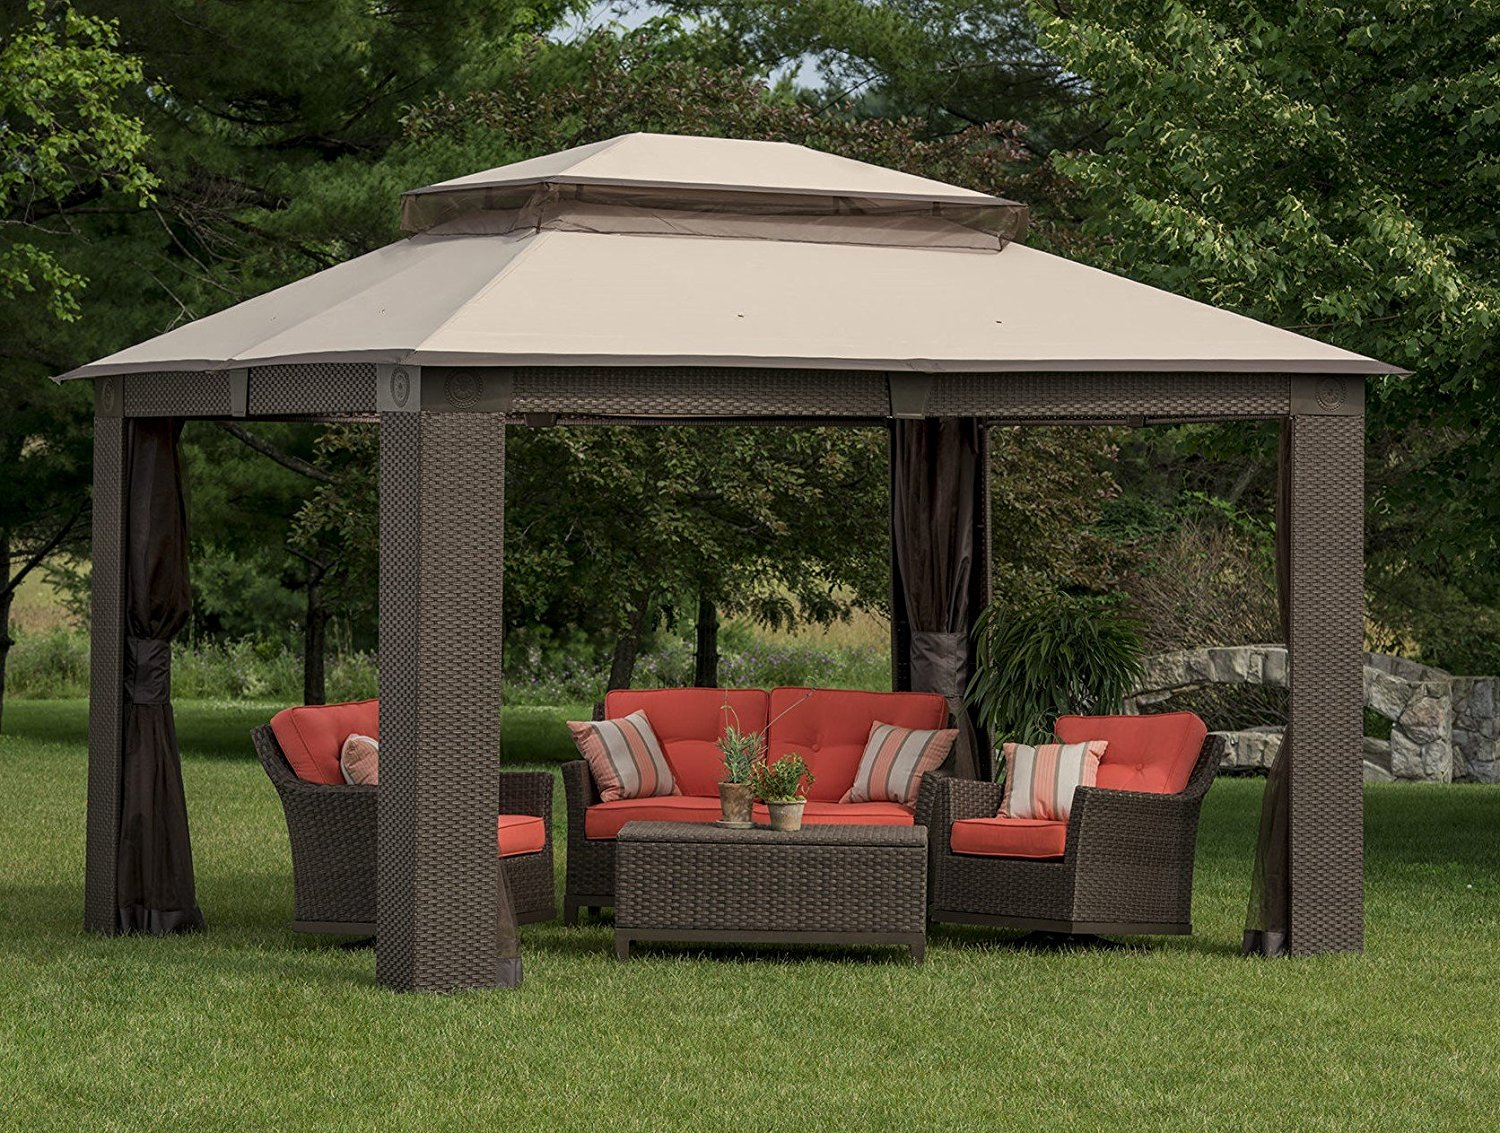 Overstock Outlet Store Locations | Overstock Outdoor Furniture | Overstock Warehouse